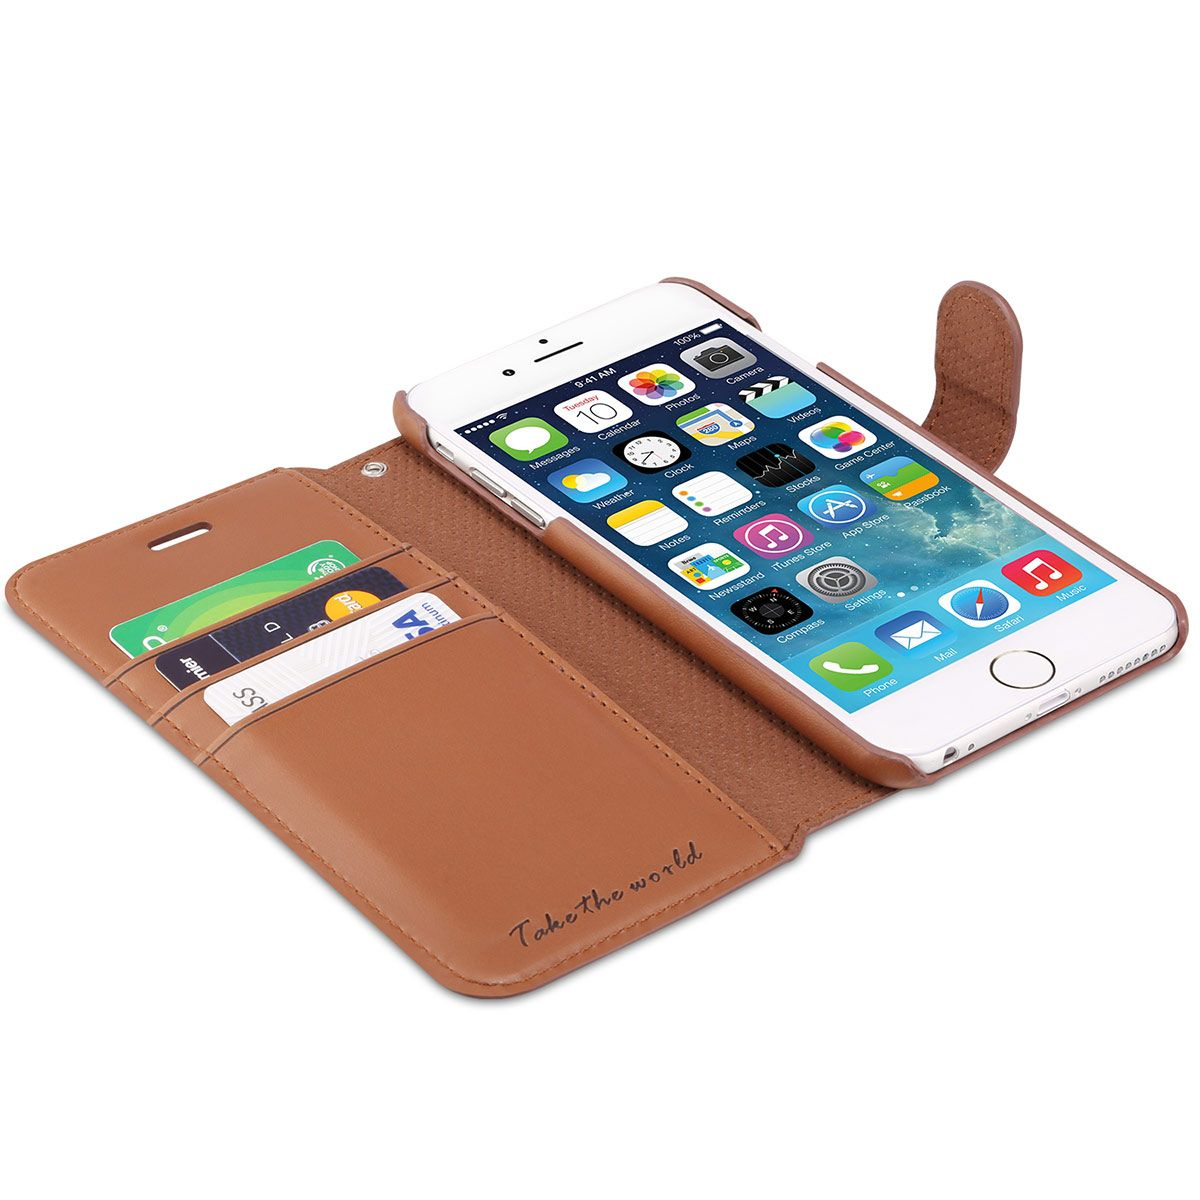 TUCCH iPhone 6S/6 Plus Leather Wallet Phone Case, Wrist Strap